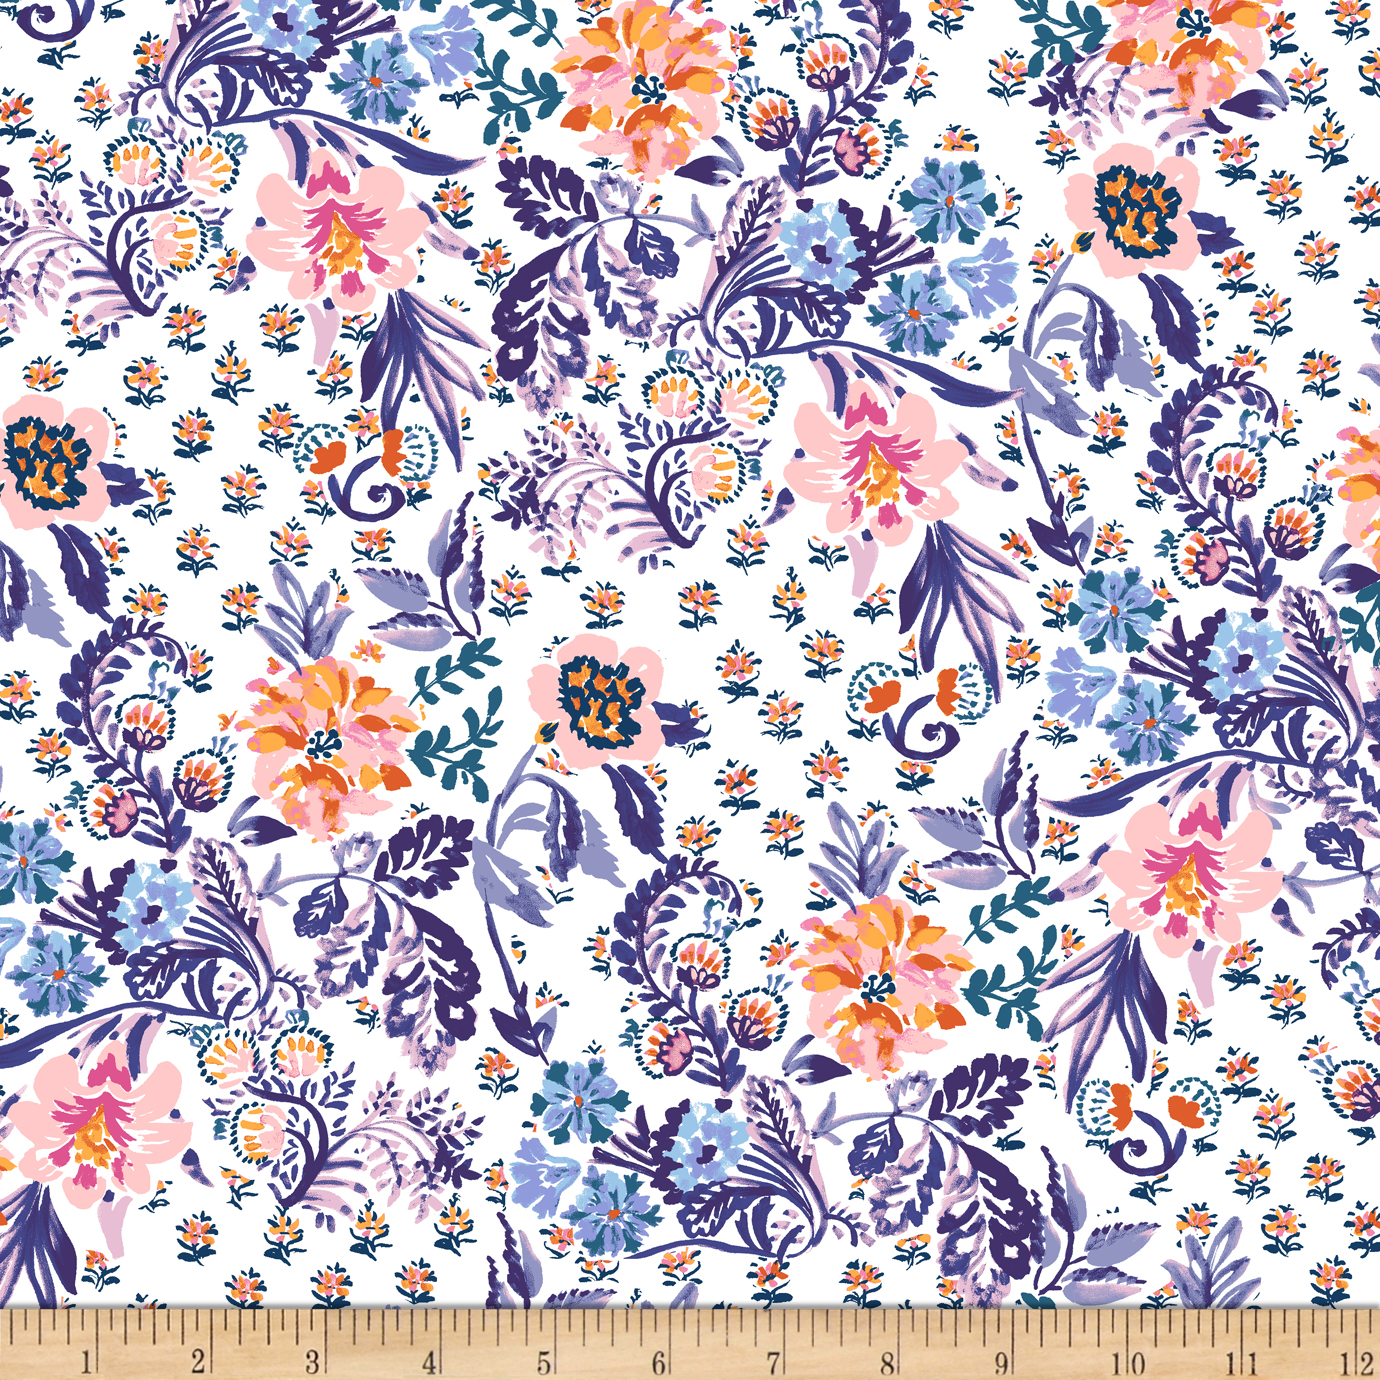 INOpets.com Anything for Pets Parents & Their Pets Elephant's Garden Floral White Fabric